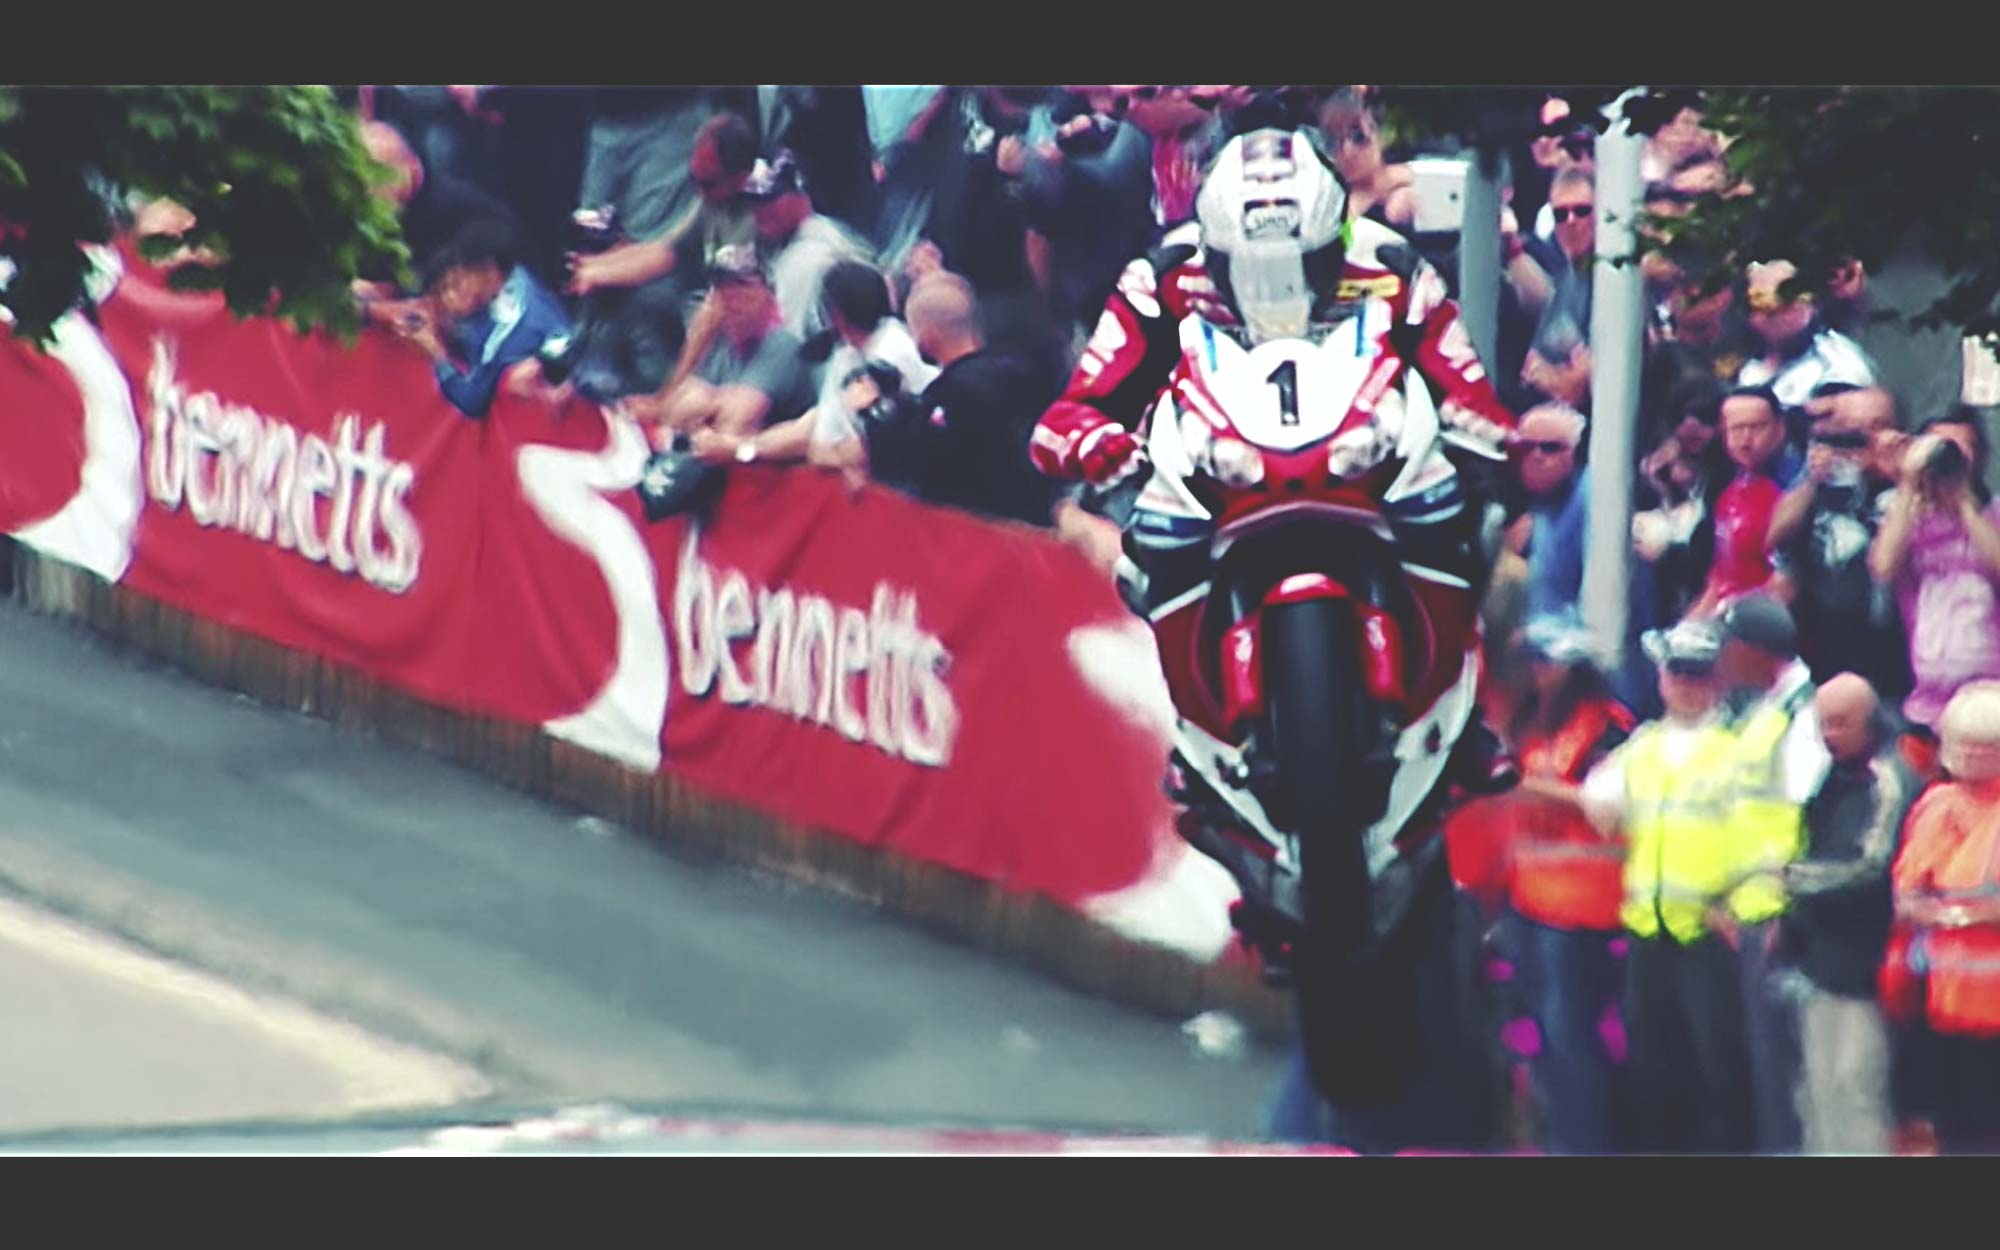 John McGuiness airborne over a crest in the Isle of Man TT as a crowd looks on in the background